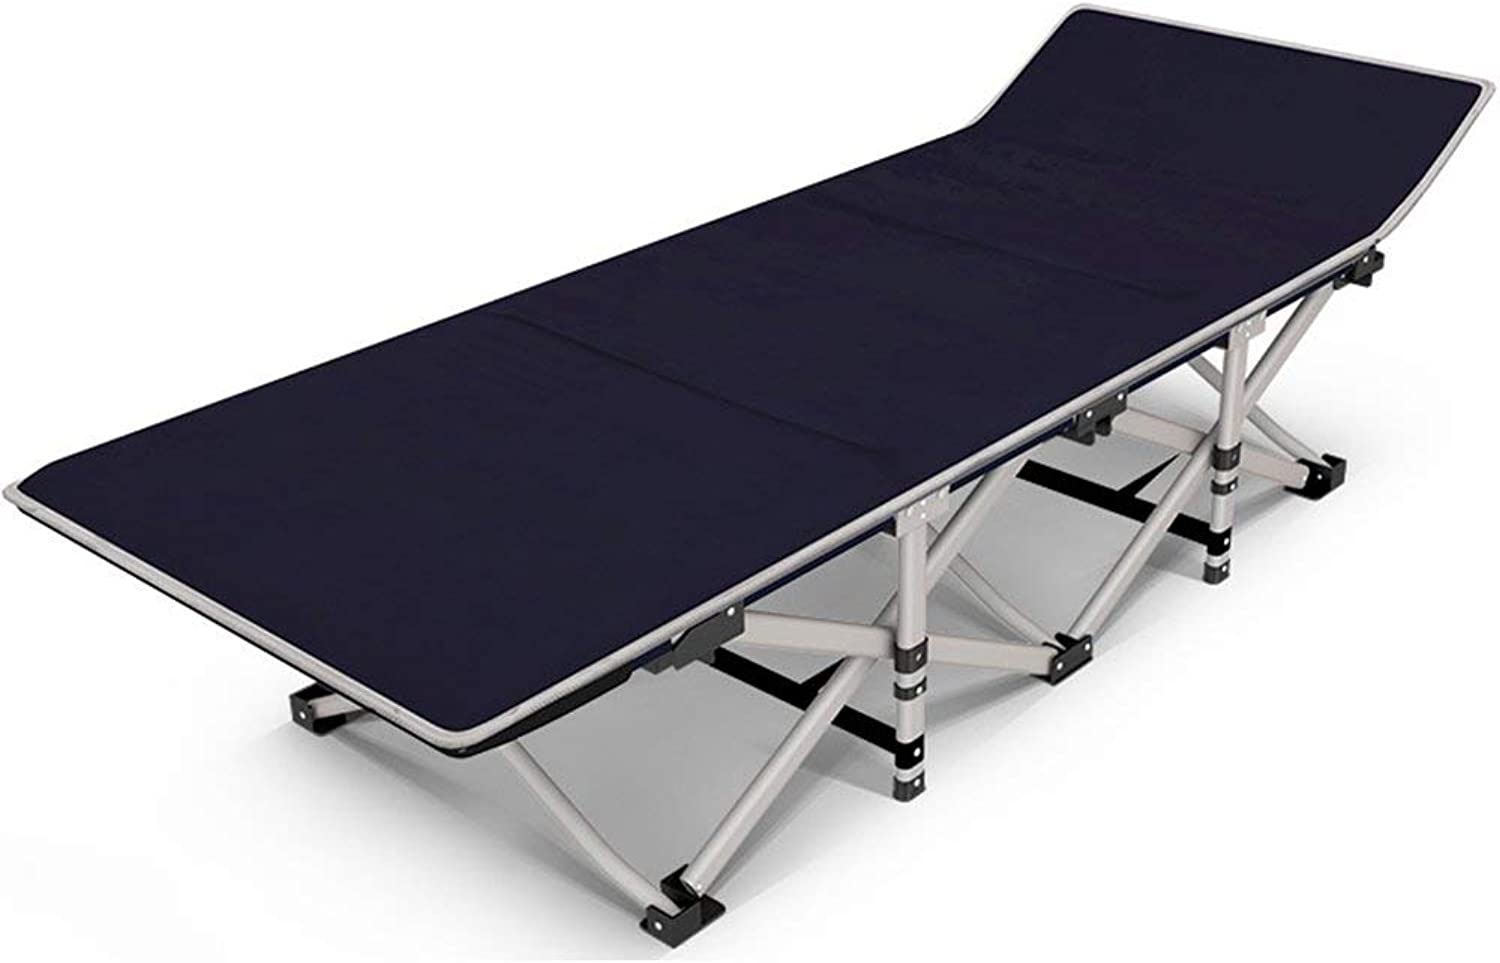 Sun Lounger Multifunction Folding Bed Simple Teslin Alloy Folding Bed Office Siesta Bed Hospital Nursing Bed Portable Camp Bed (color   1004)